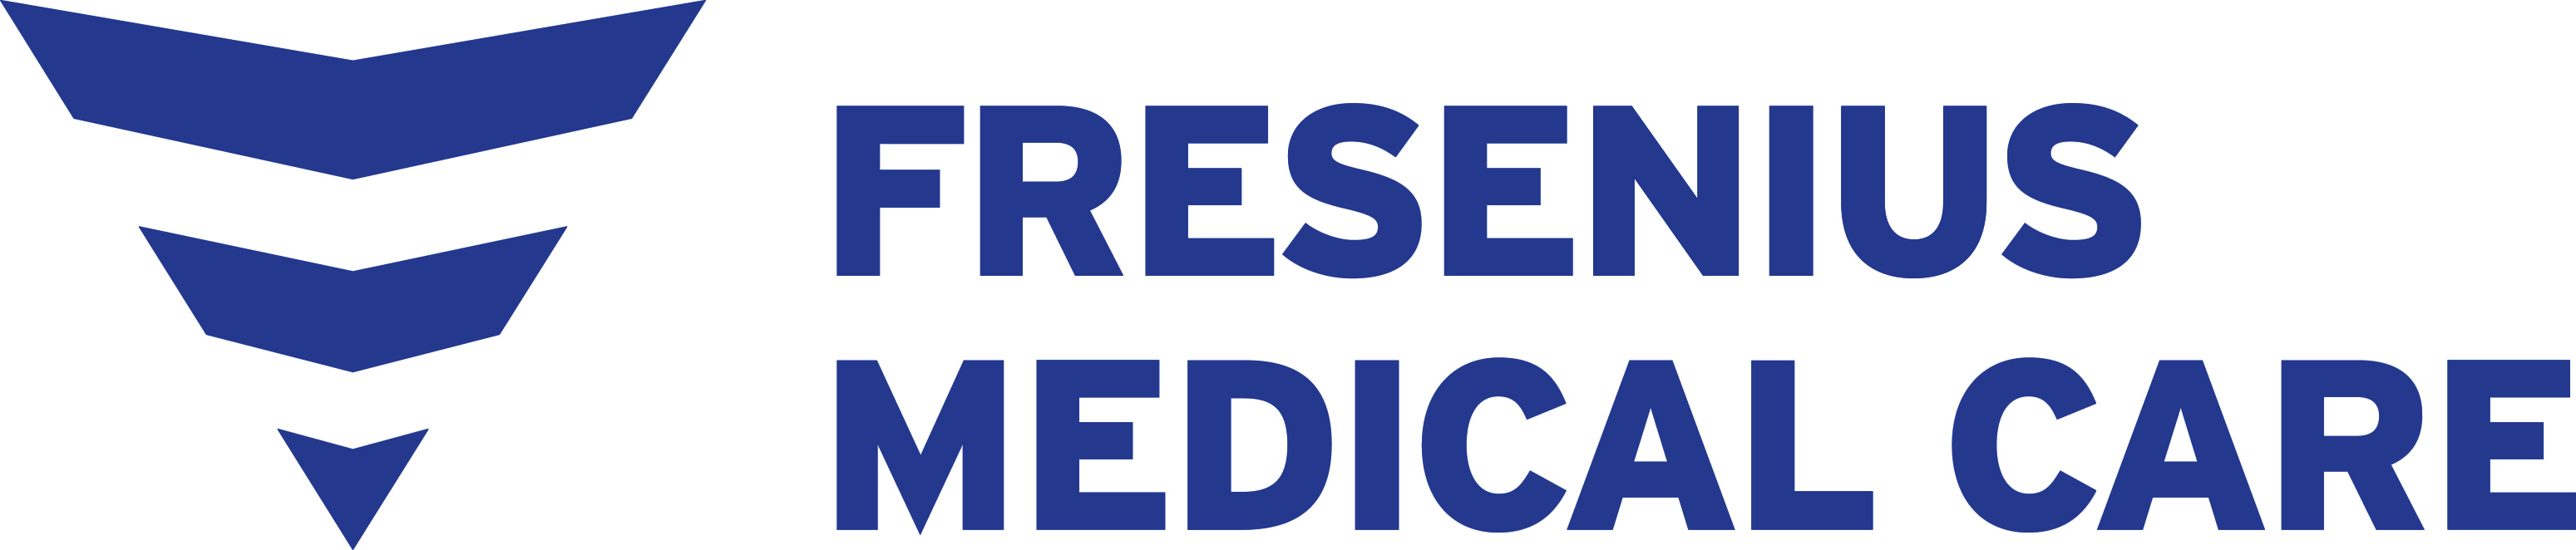 Fresenius Medical Care GmbH